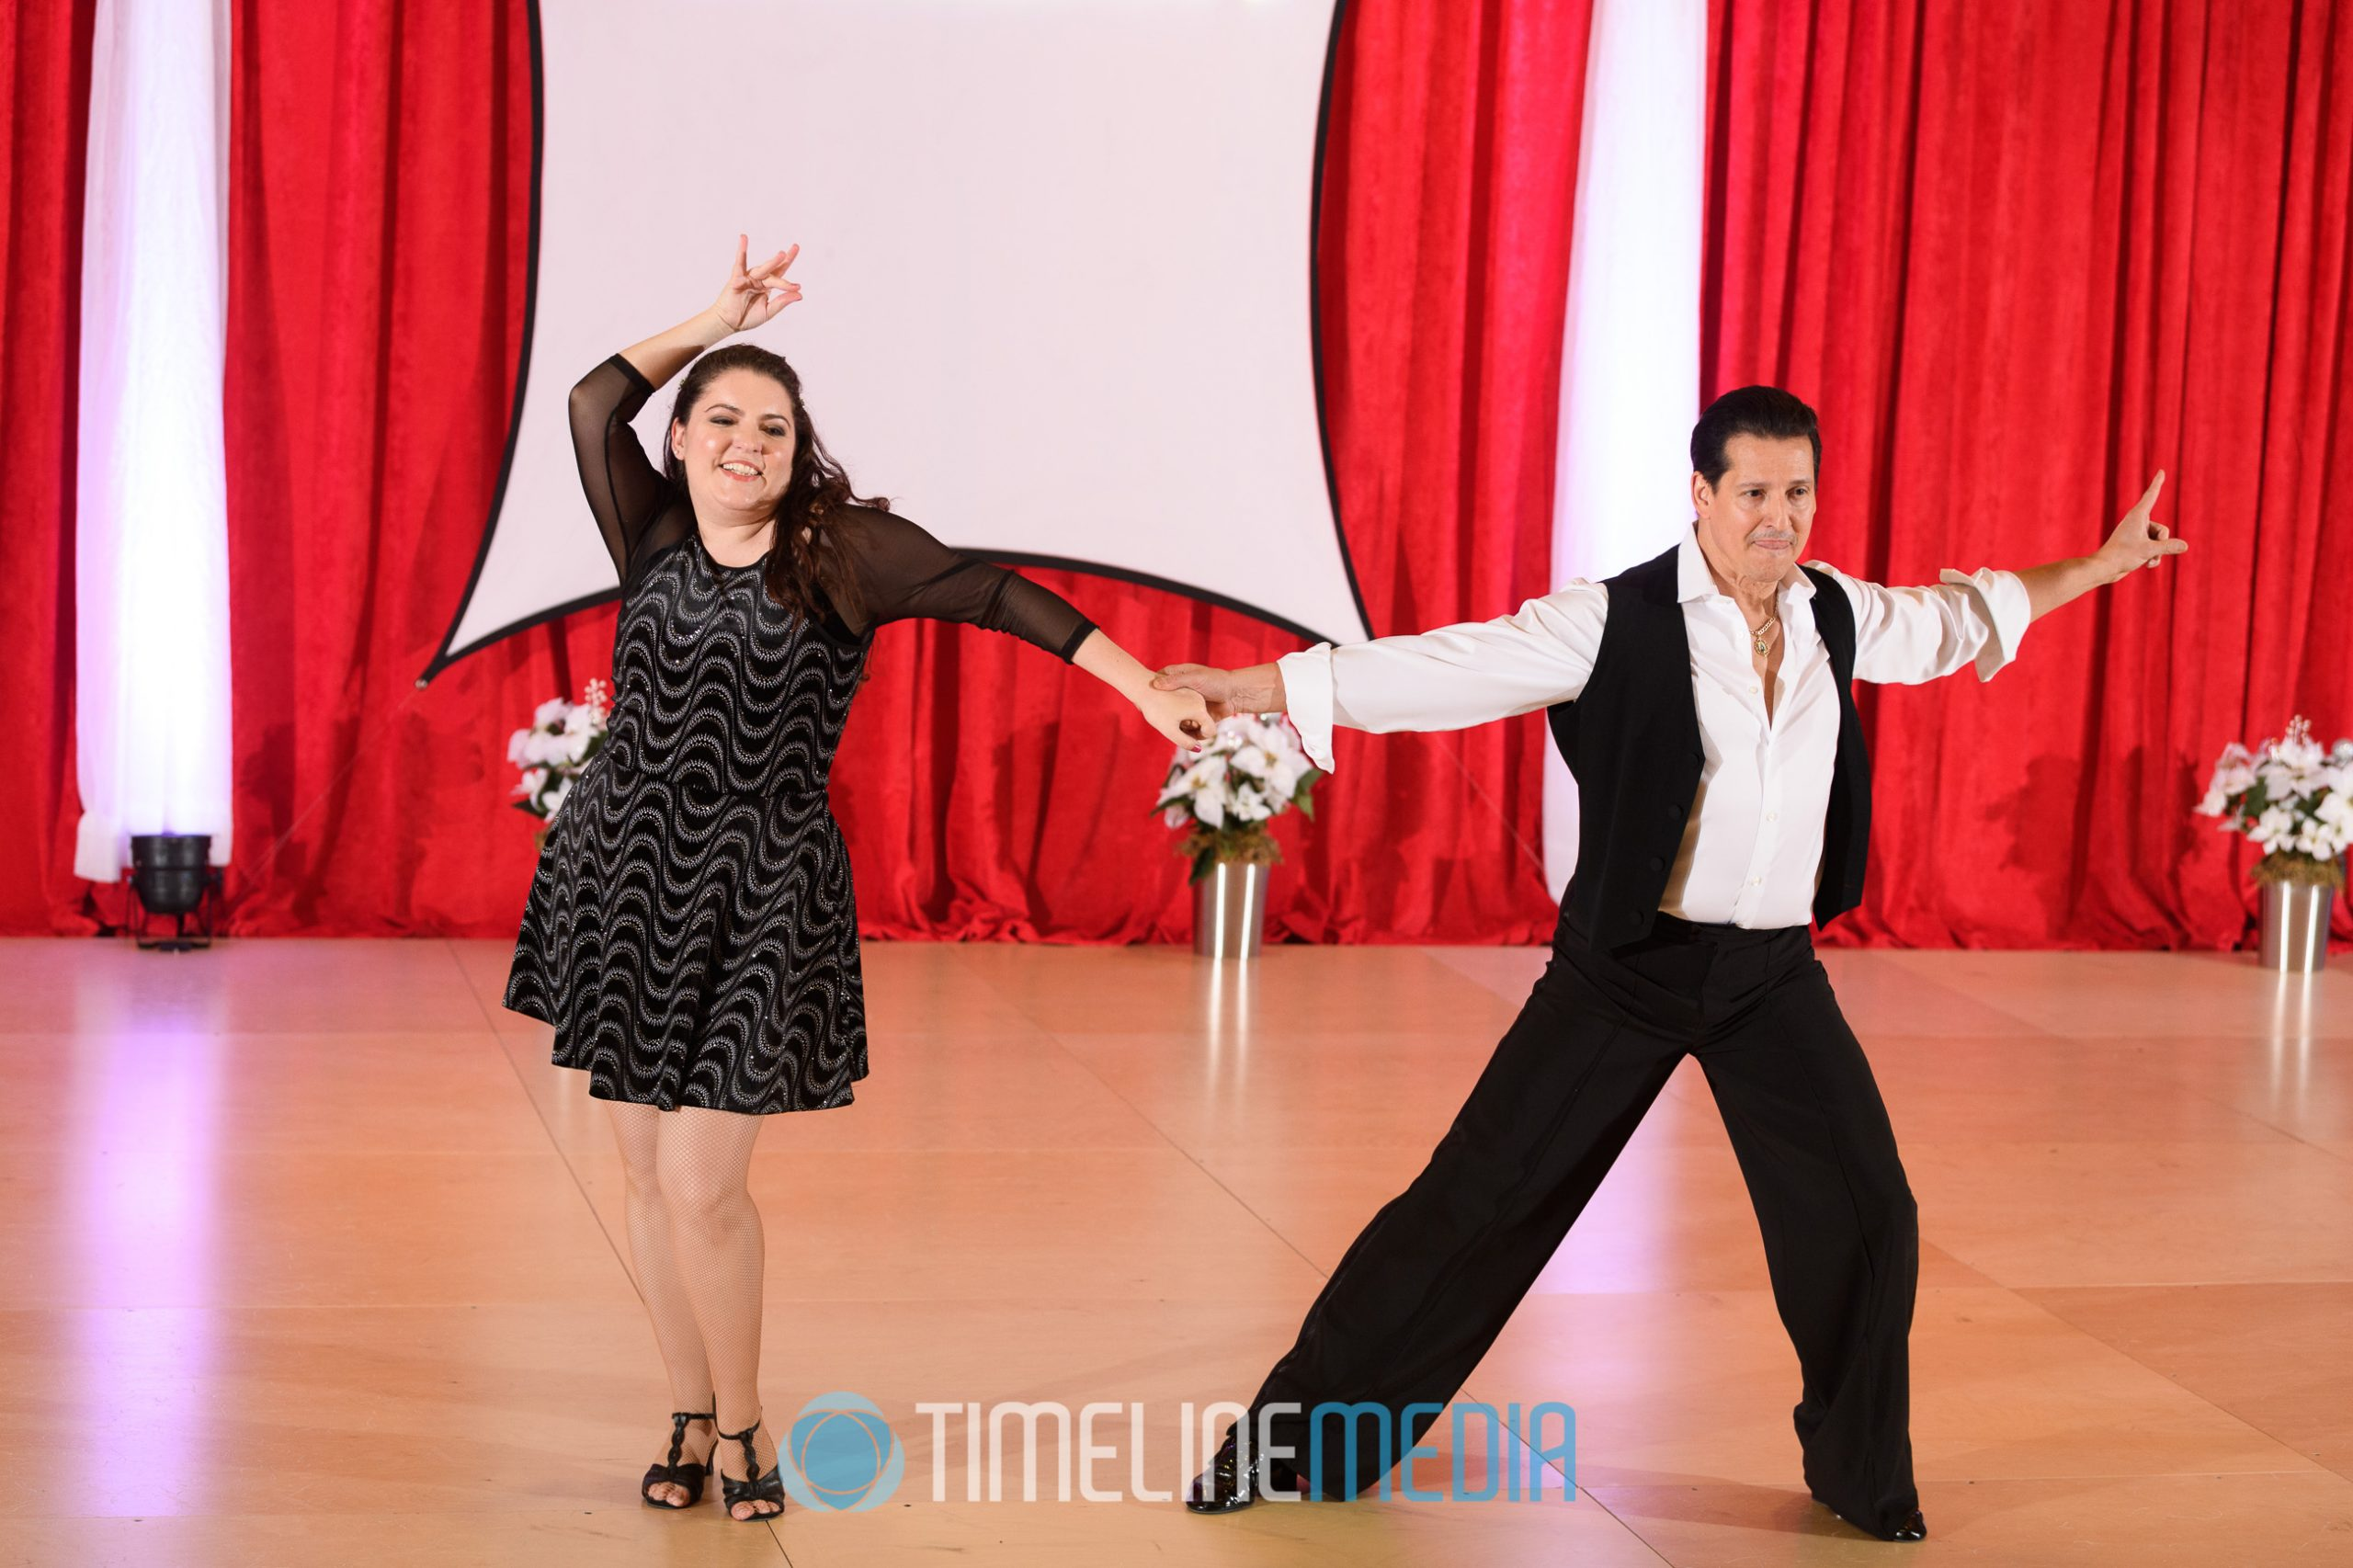 Christina and Carlos dancing a professional show ©TimeLine Media